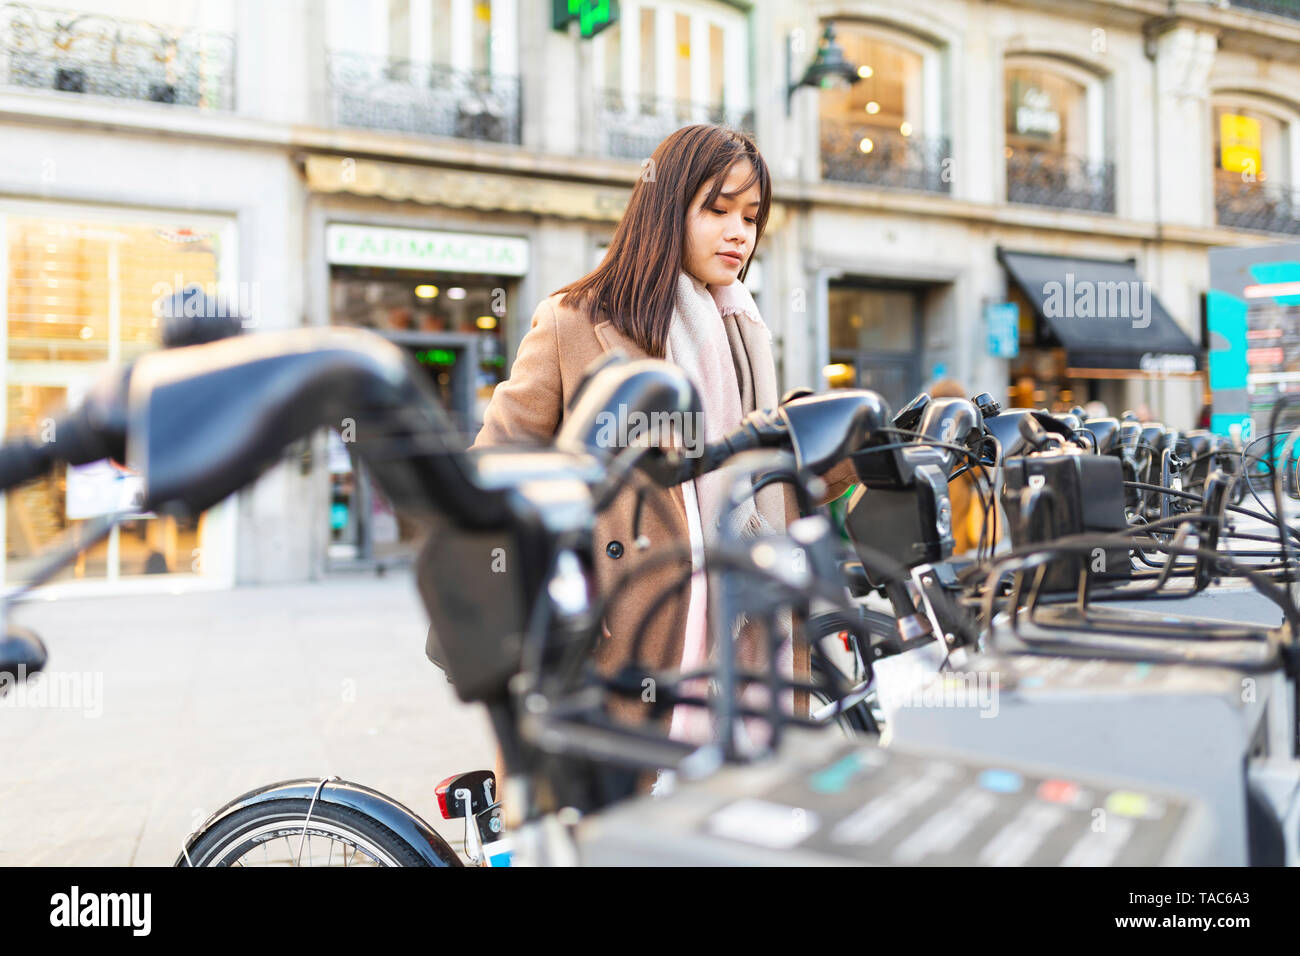 Spain, Madrid, young woman using rental bike in the city - Stock Image